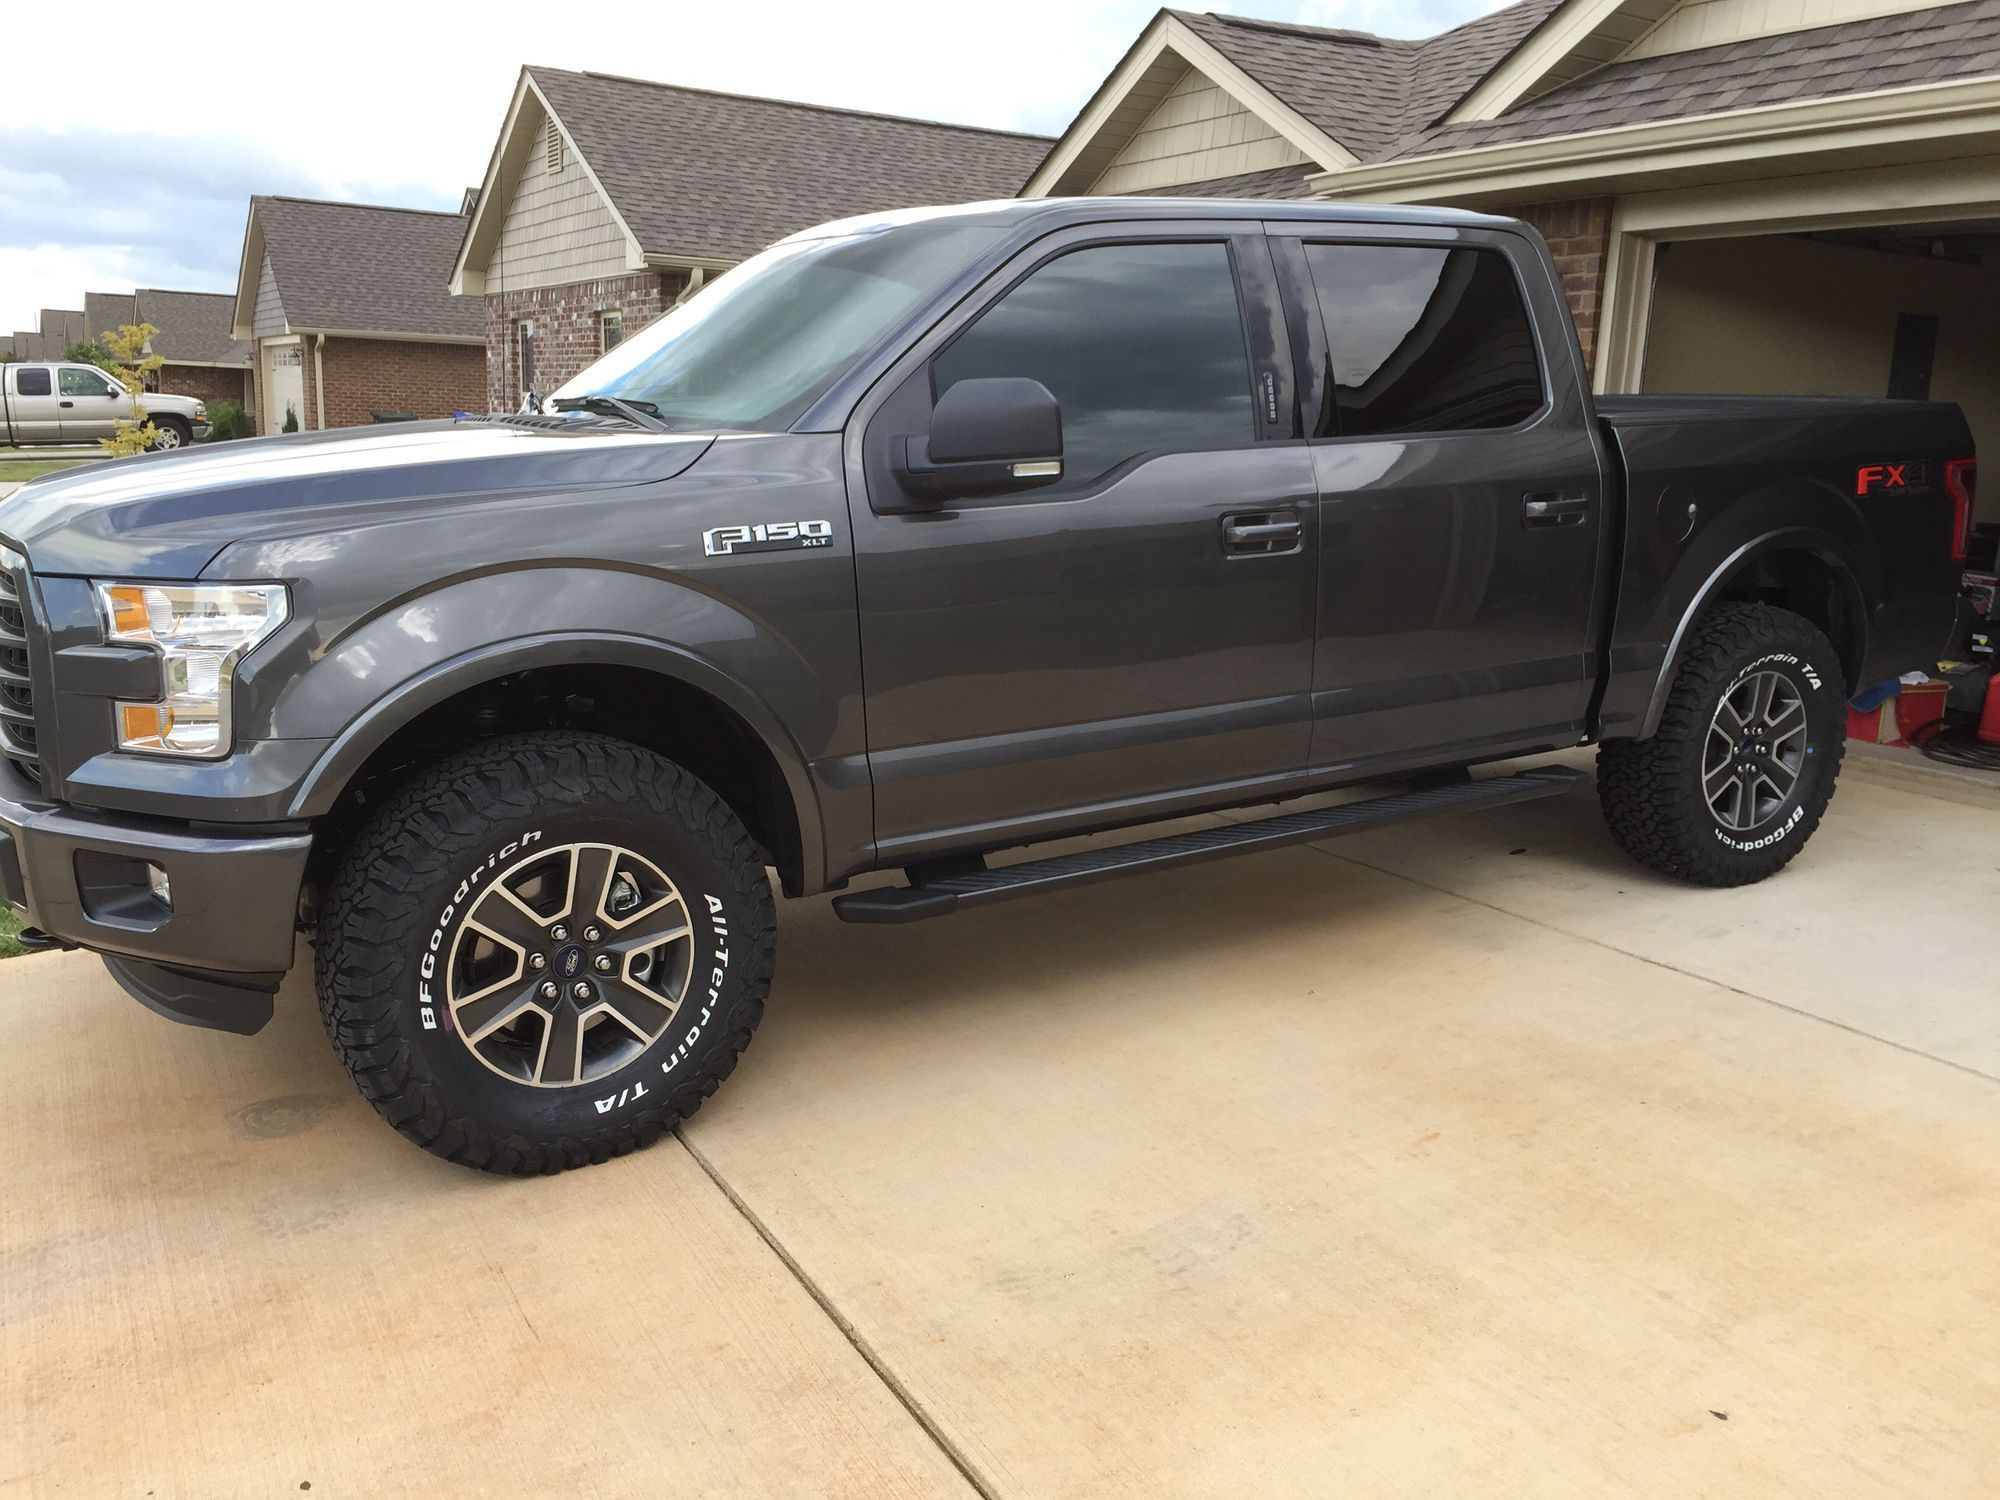 Any 18 sport wheels with ko2 page 4 ford f150 forum community of ford truck fans